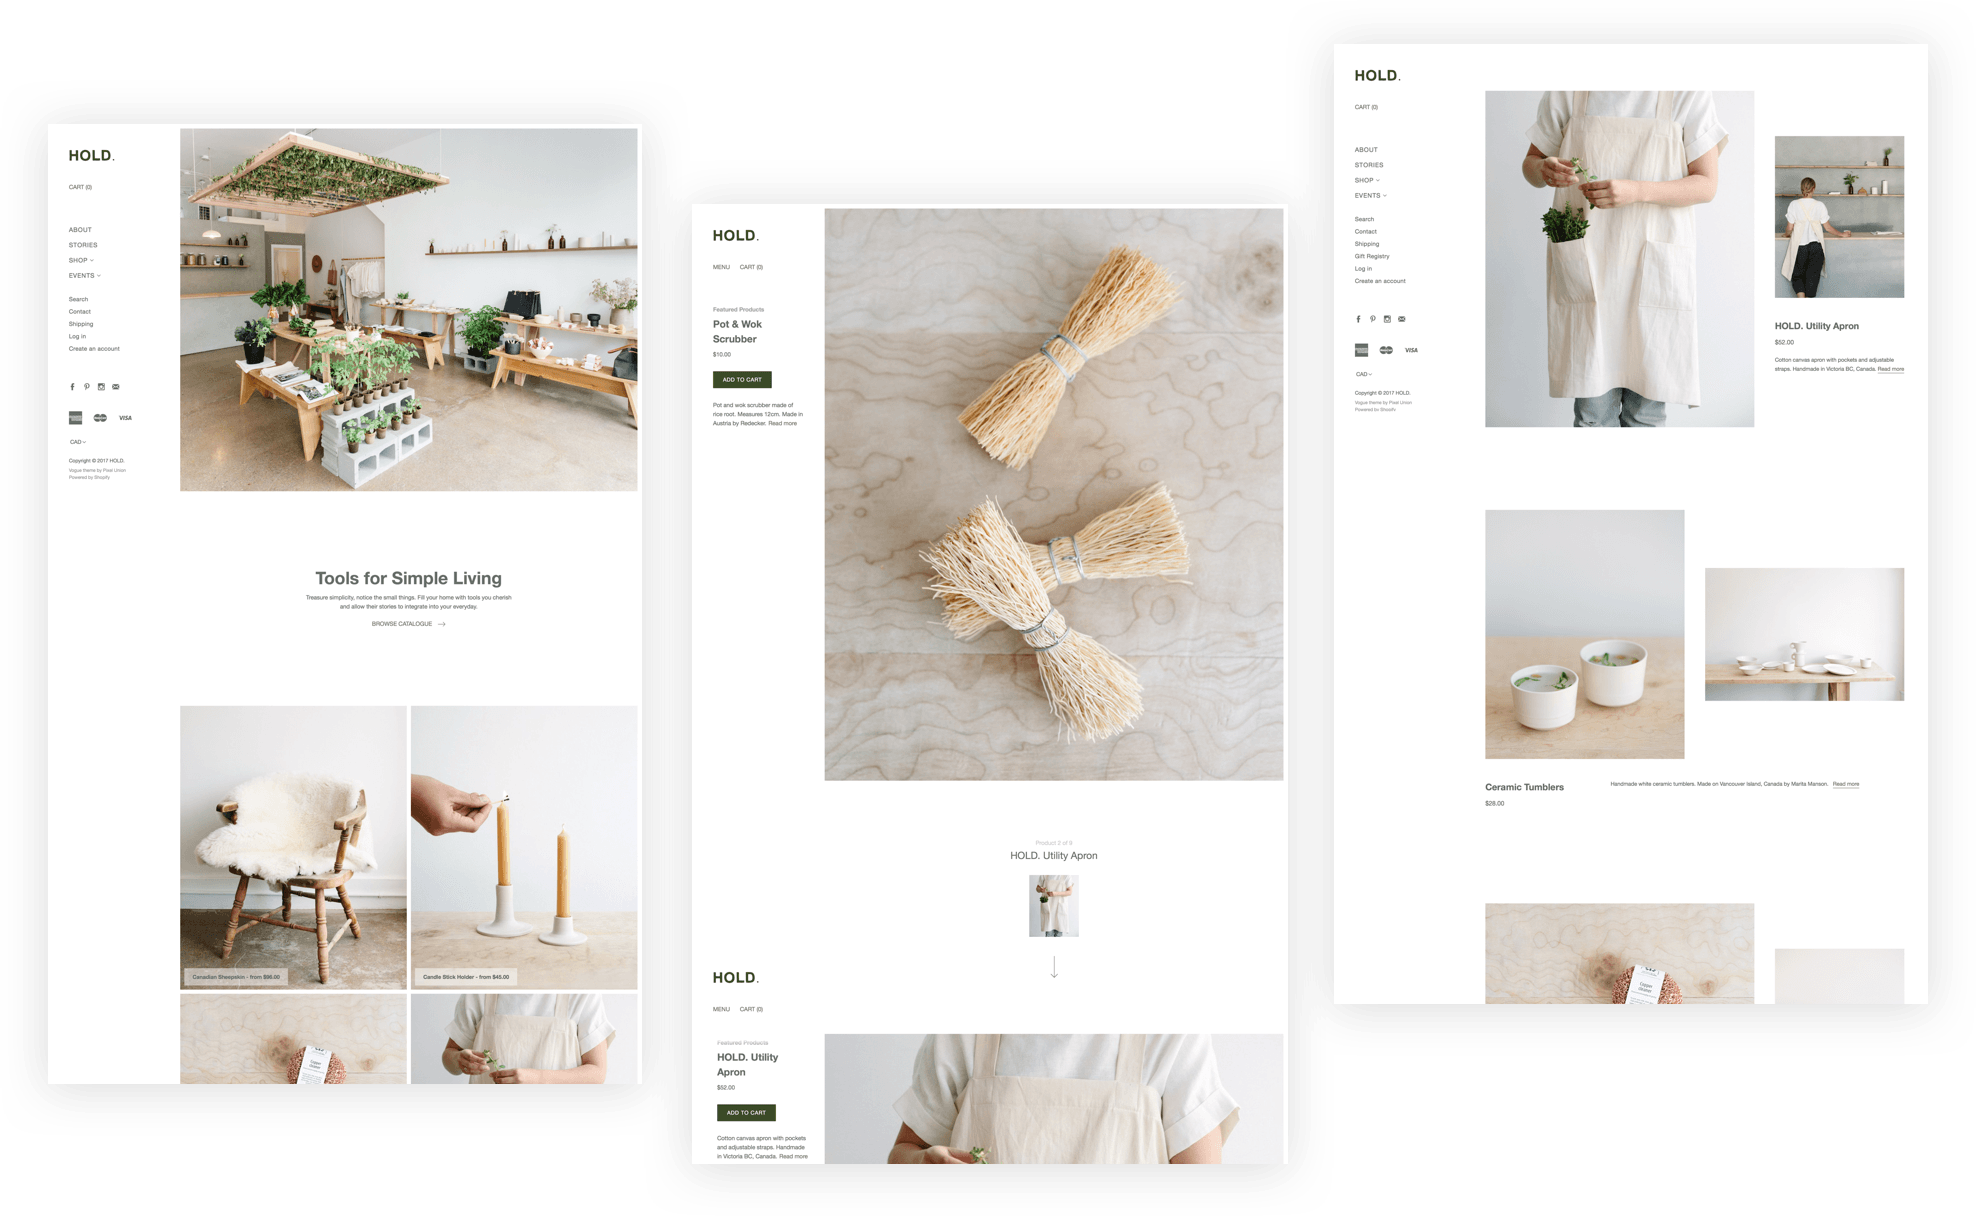 Hold webpages using Vogue Shopify theme